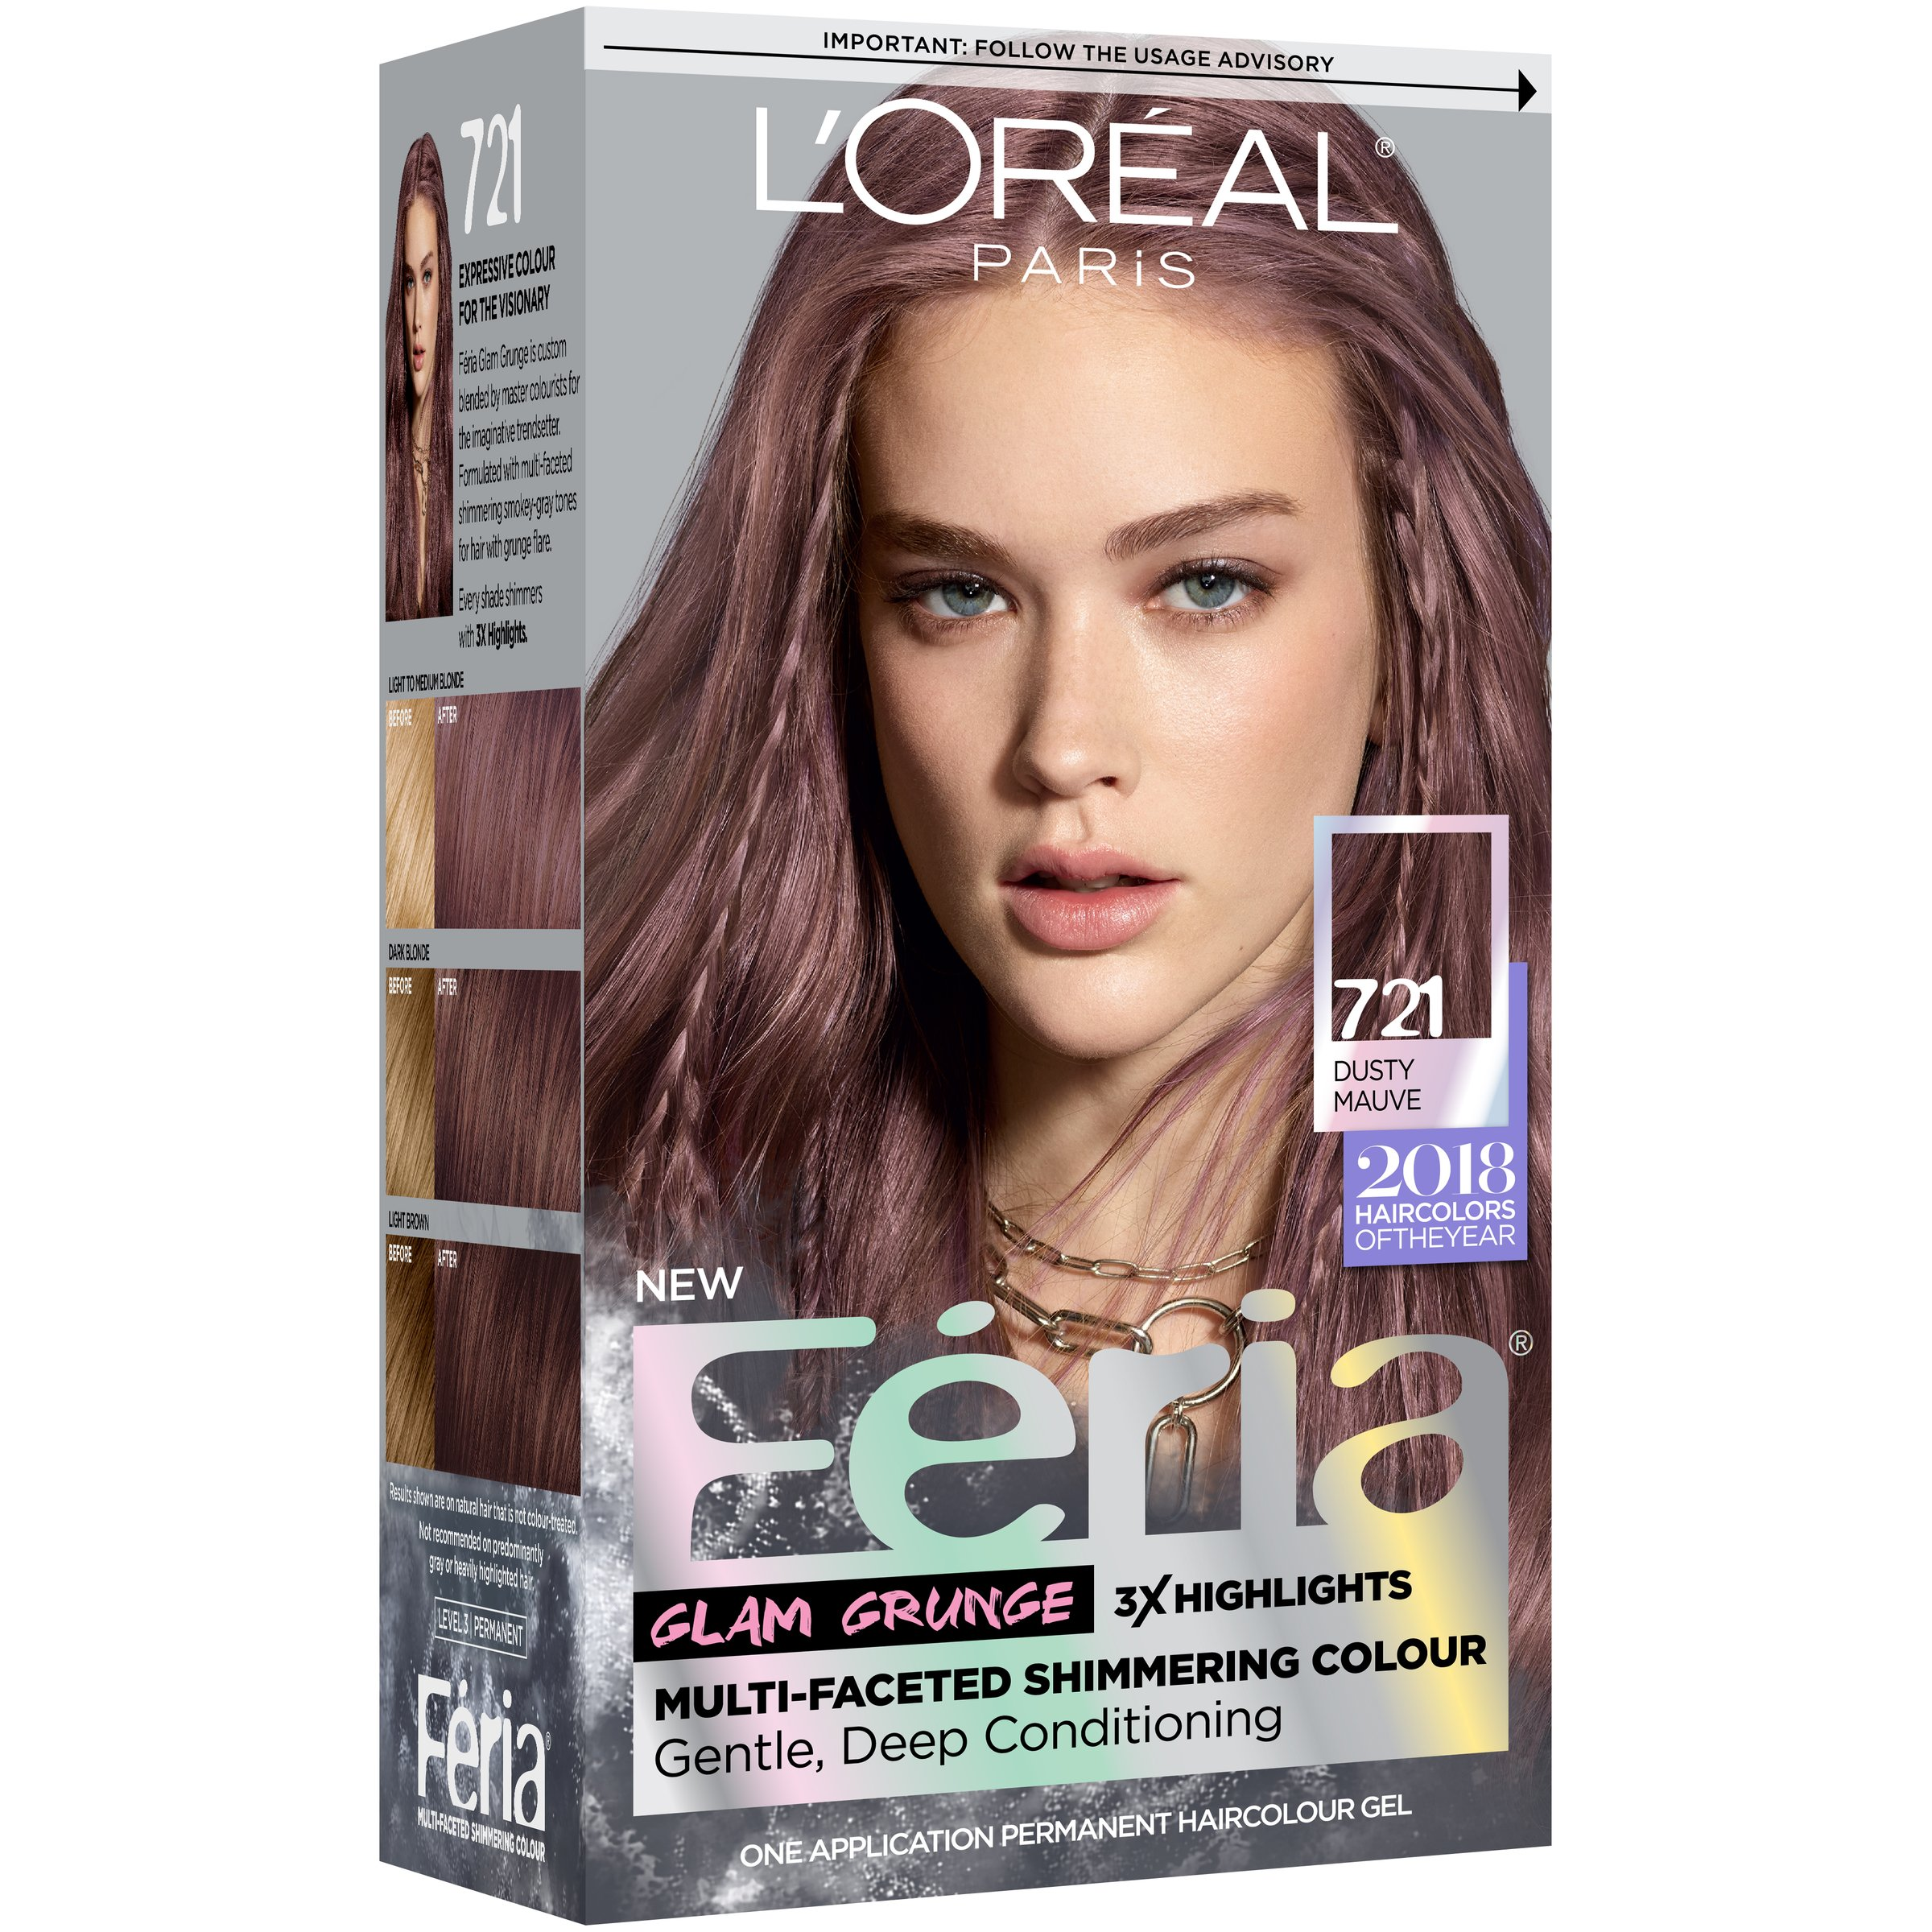 Feria Dusty Mauve Hair Color Permanent Shimmering Pink Purple DIY ...